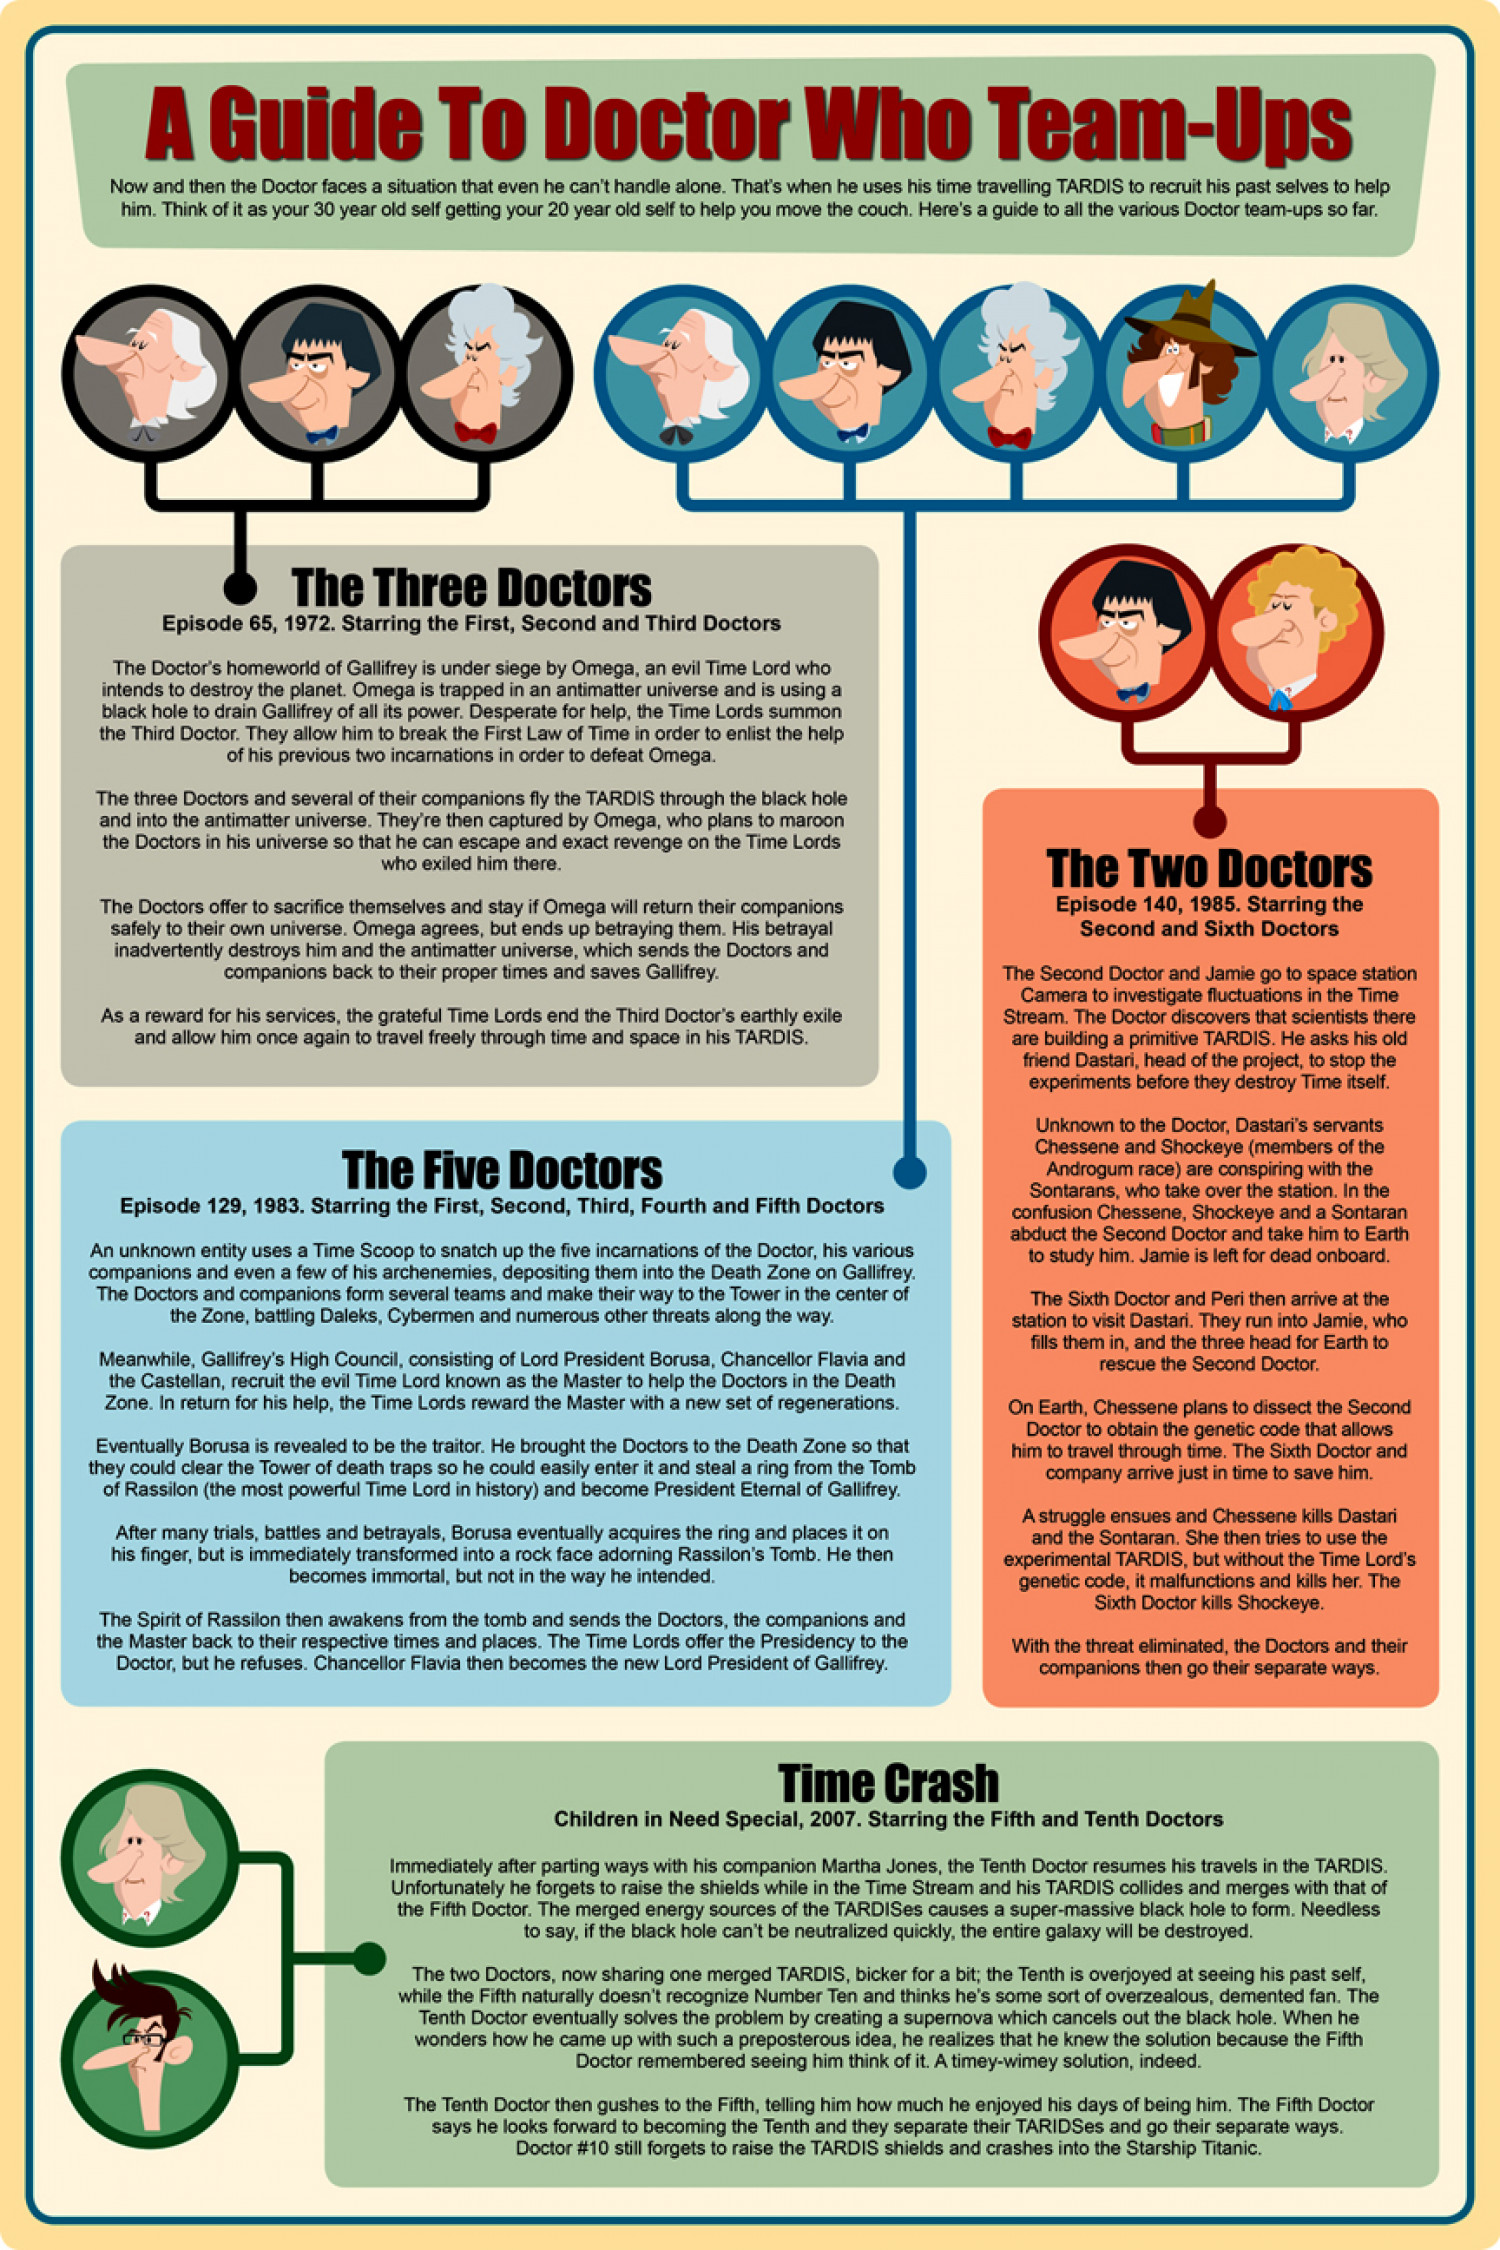 A Guide to Doctor Who Teamups Infographic